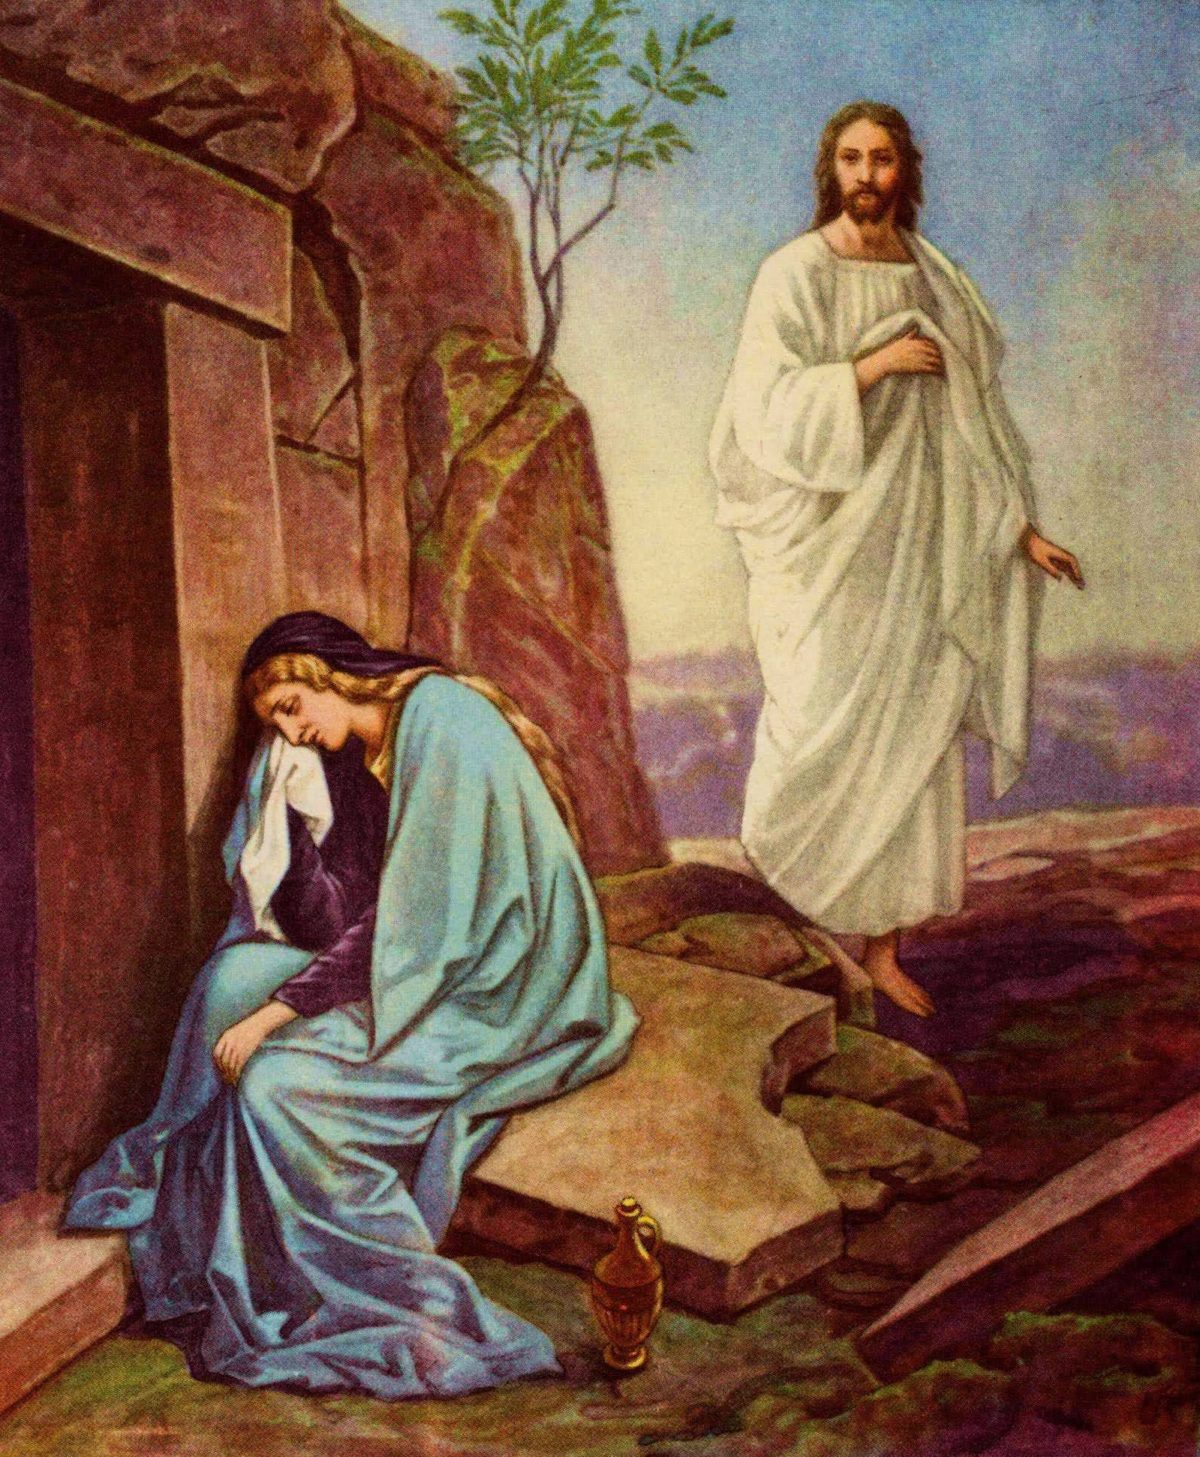 Christ's resurrection provides answers for our hearts